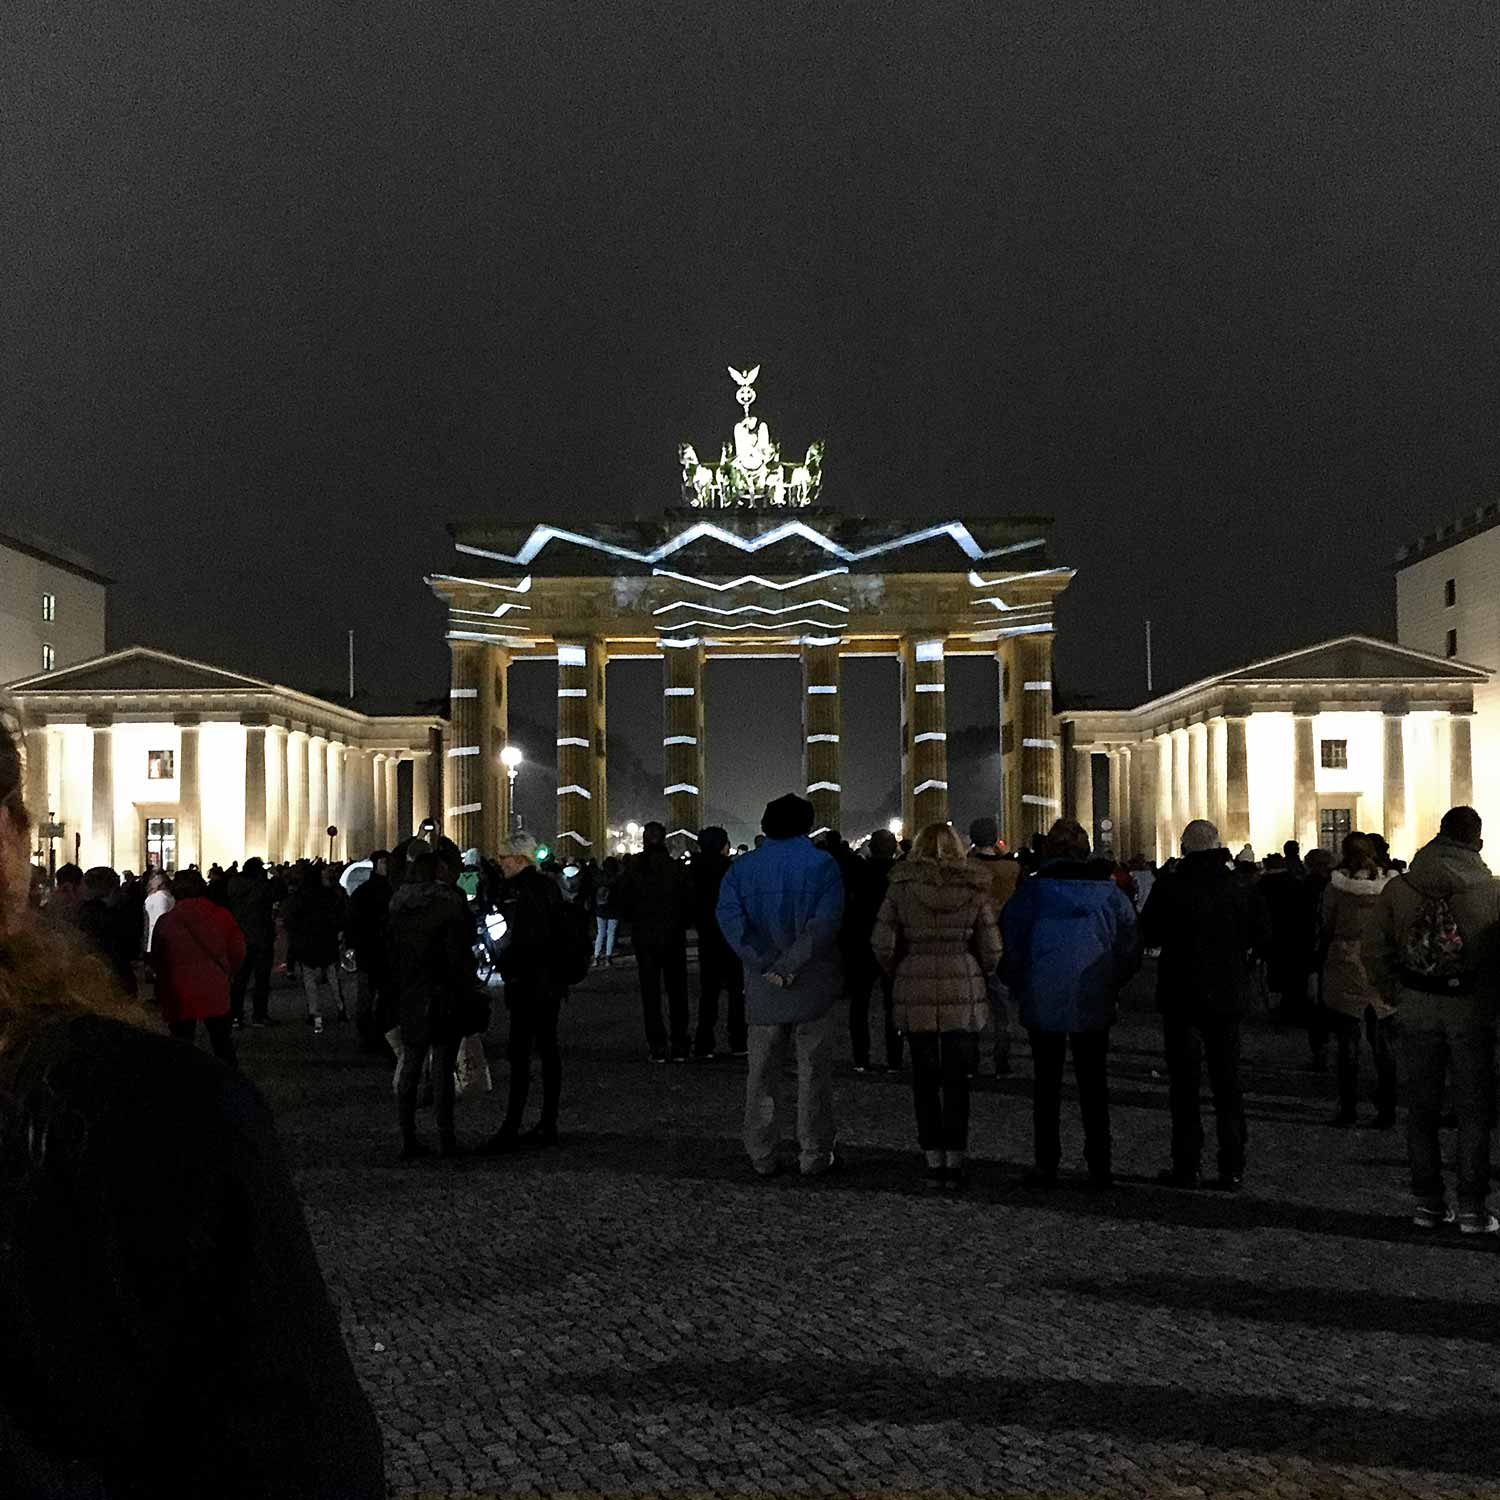 Festival of Lights am Brandenburger Tor